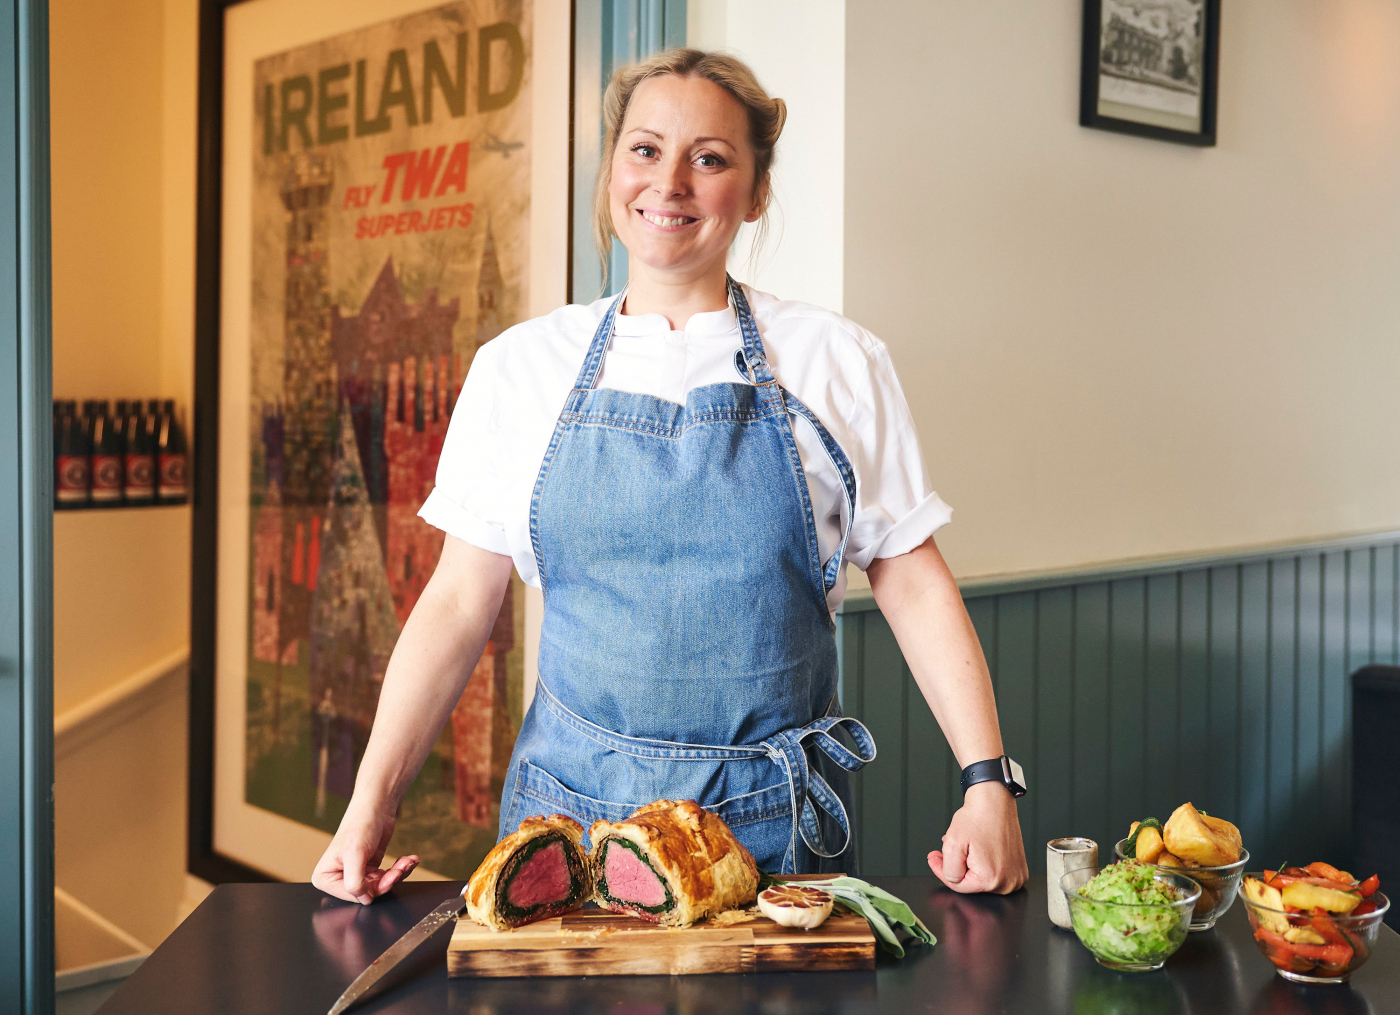 Bord Bia Collaborates with Top Chefs to Support Independent Butchers this Christmas with the Launch of Grass-Fed Christmas Feasts